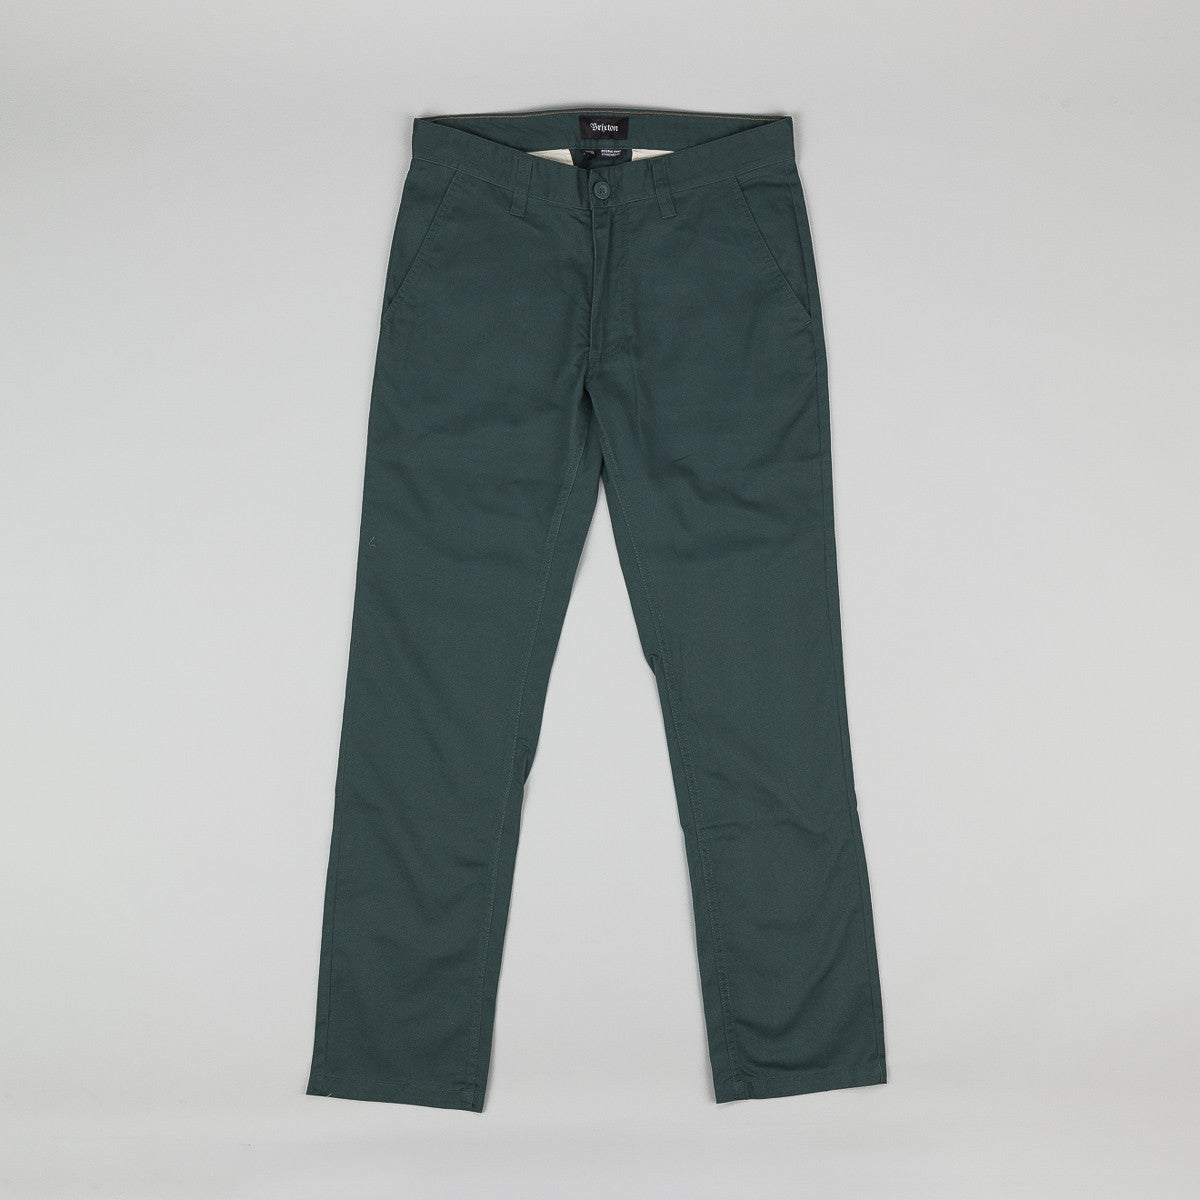 Brixton Reserve Chino Trousers